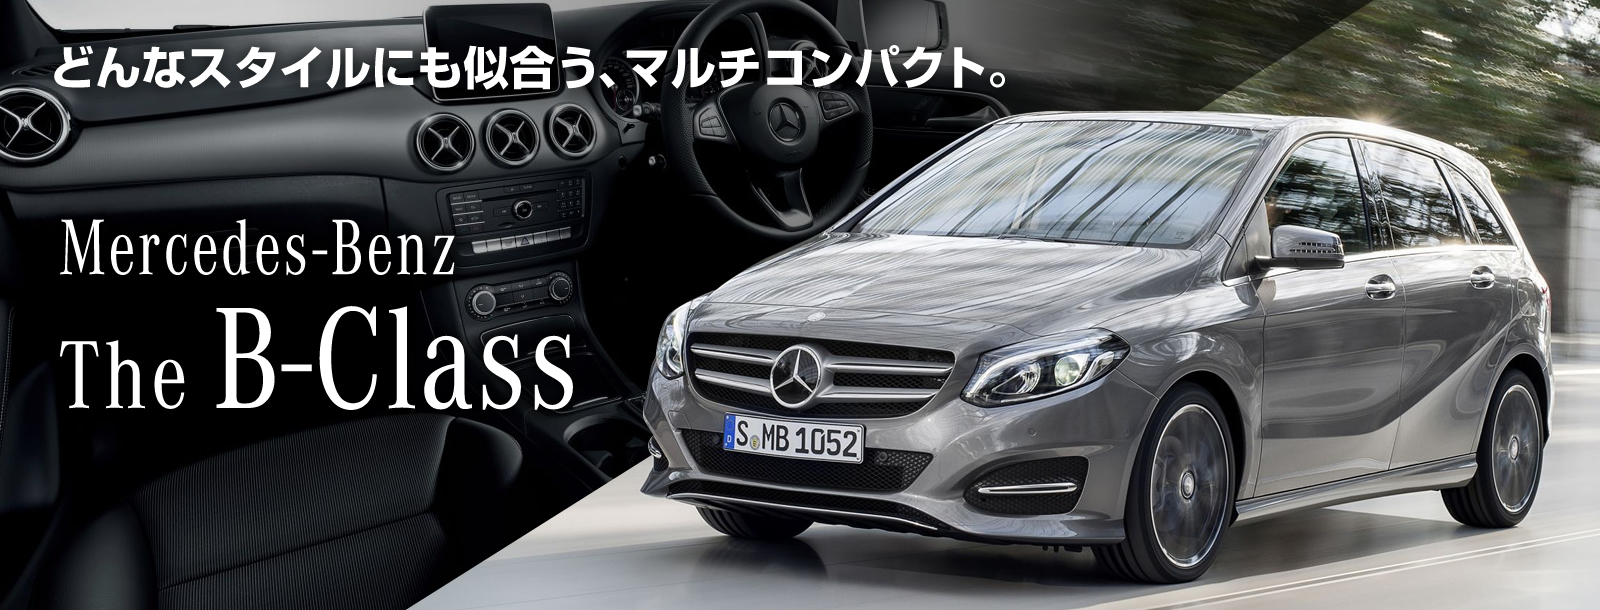 Mercedes-Benz The B-Clas